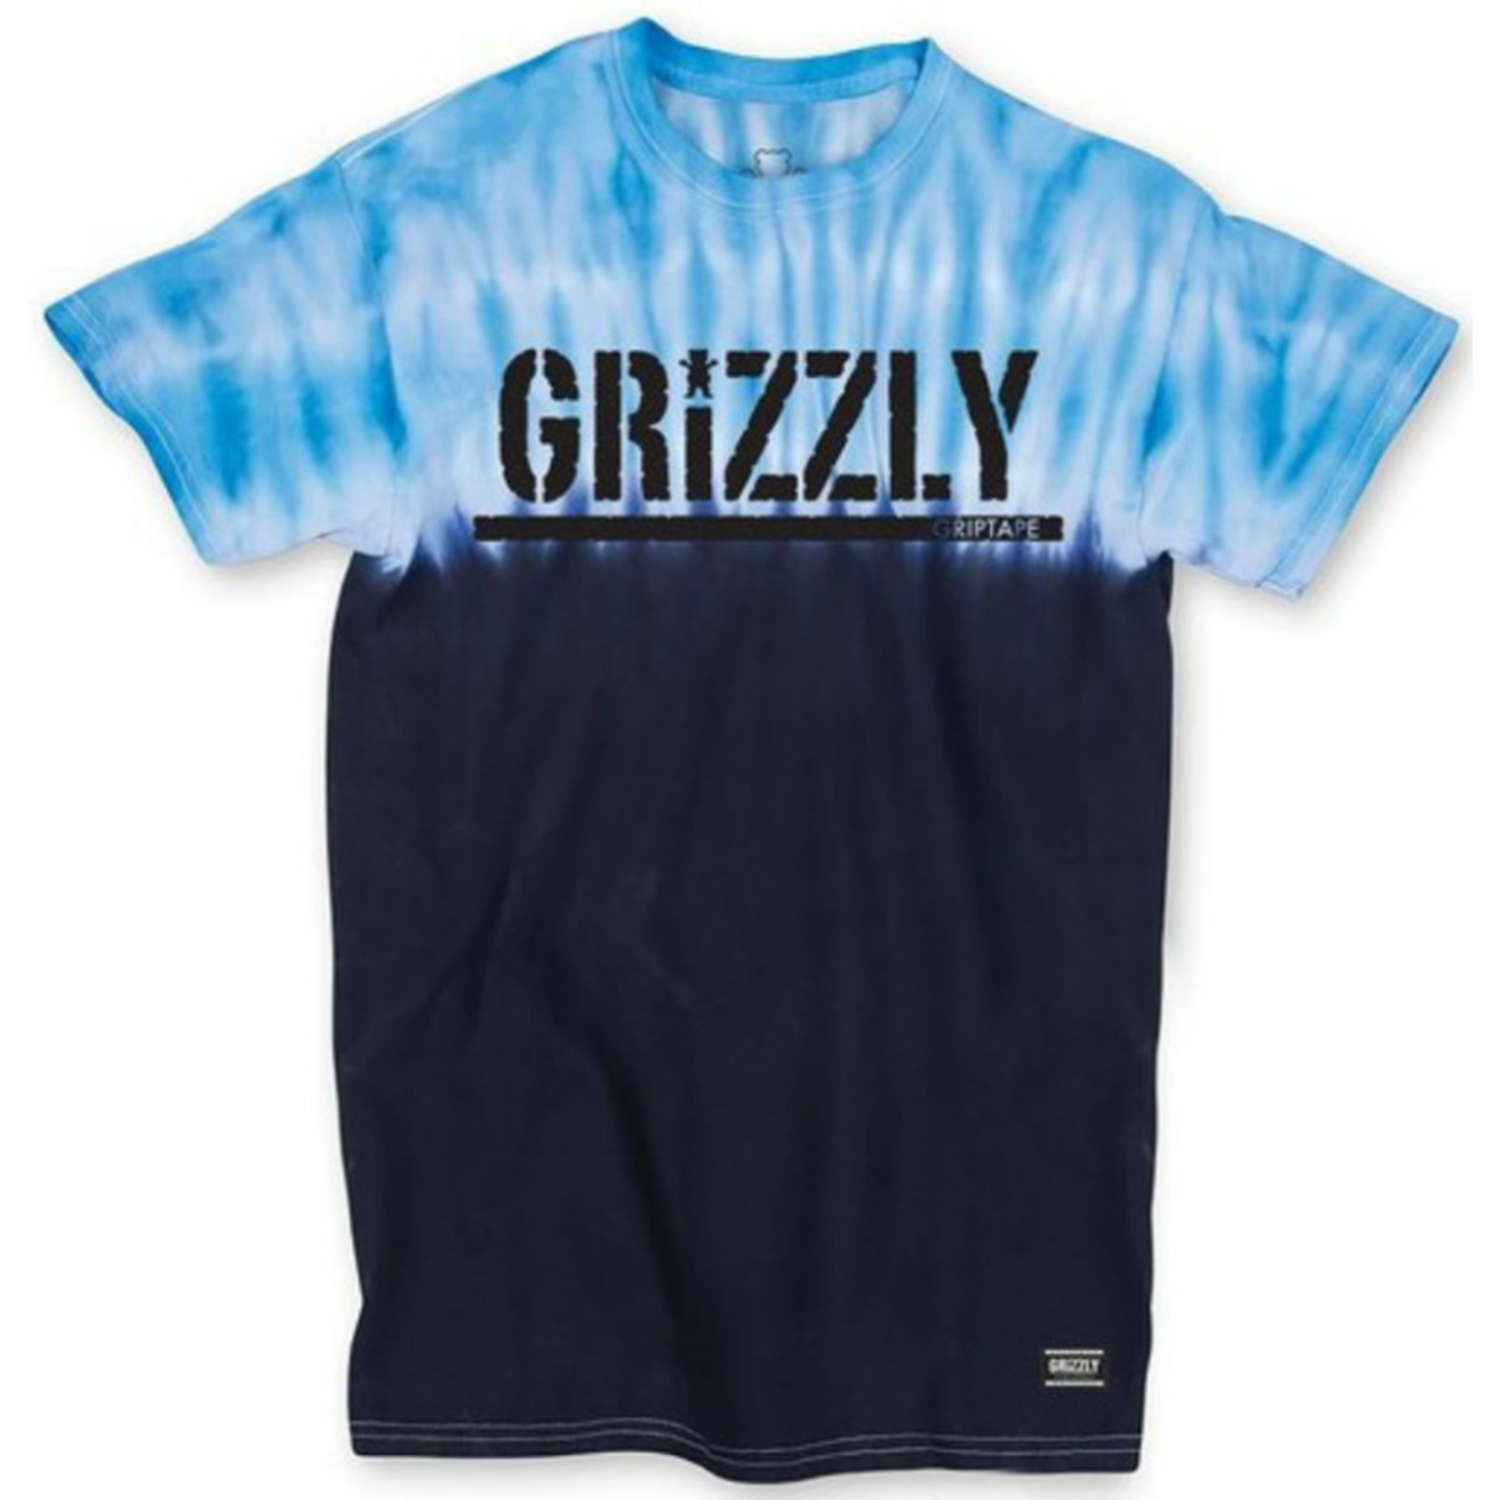 Grizzly Fire Blue Tie Dye